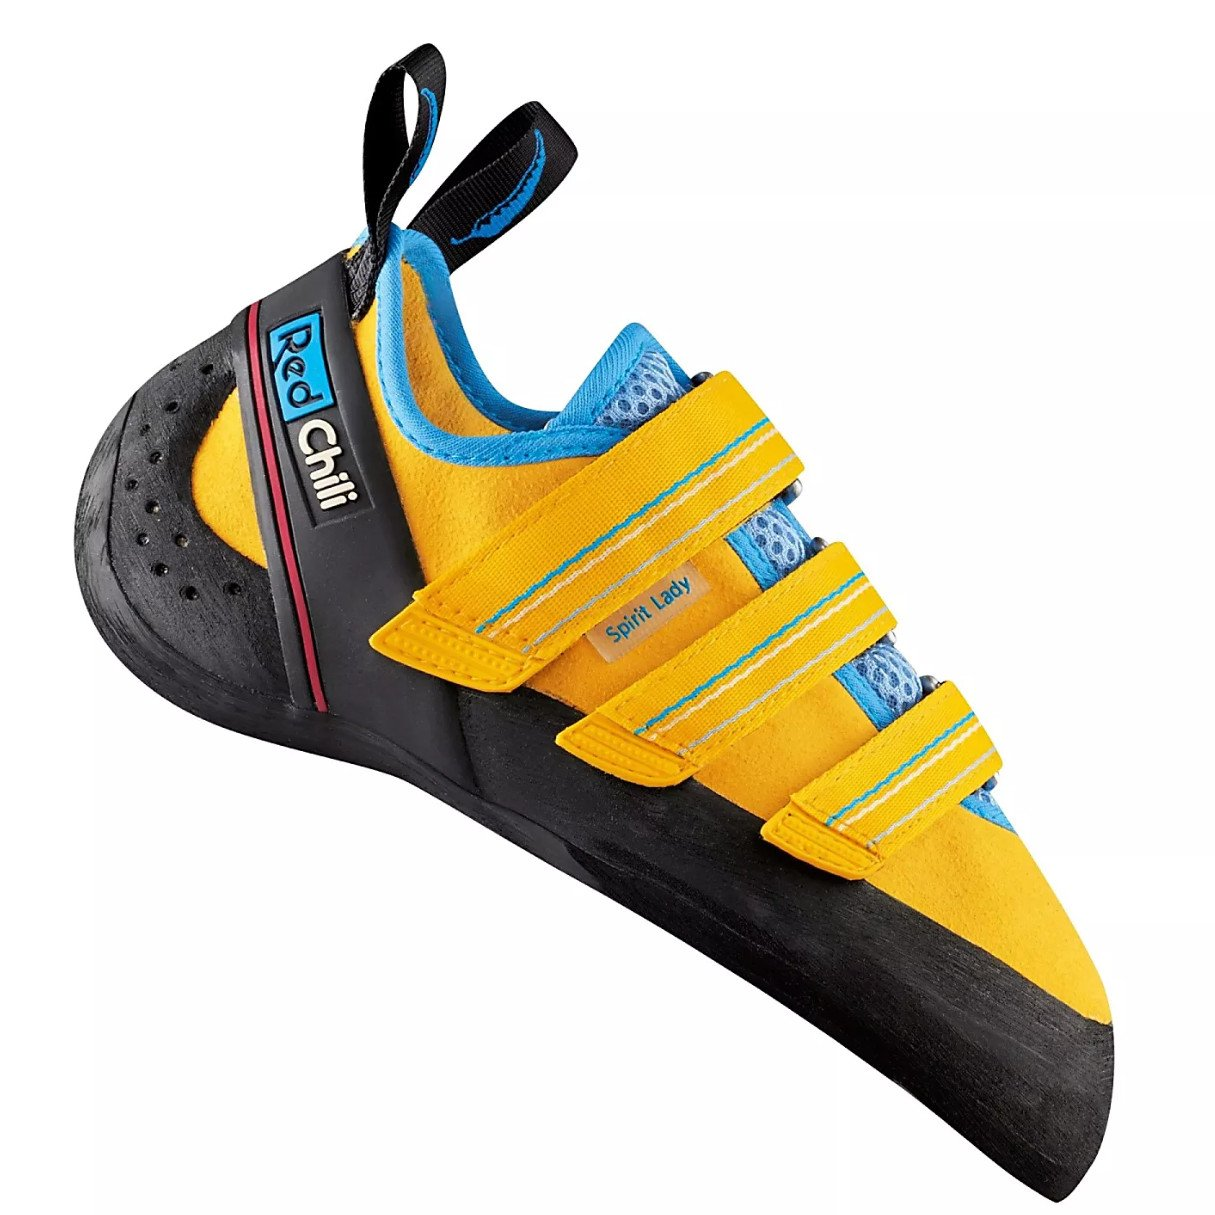 Red Chili Spirit Lady VCR climbing shoe, in black, yellow and blue colours